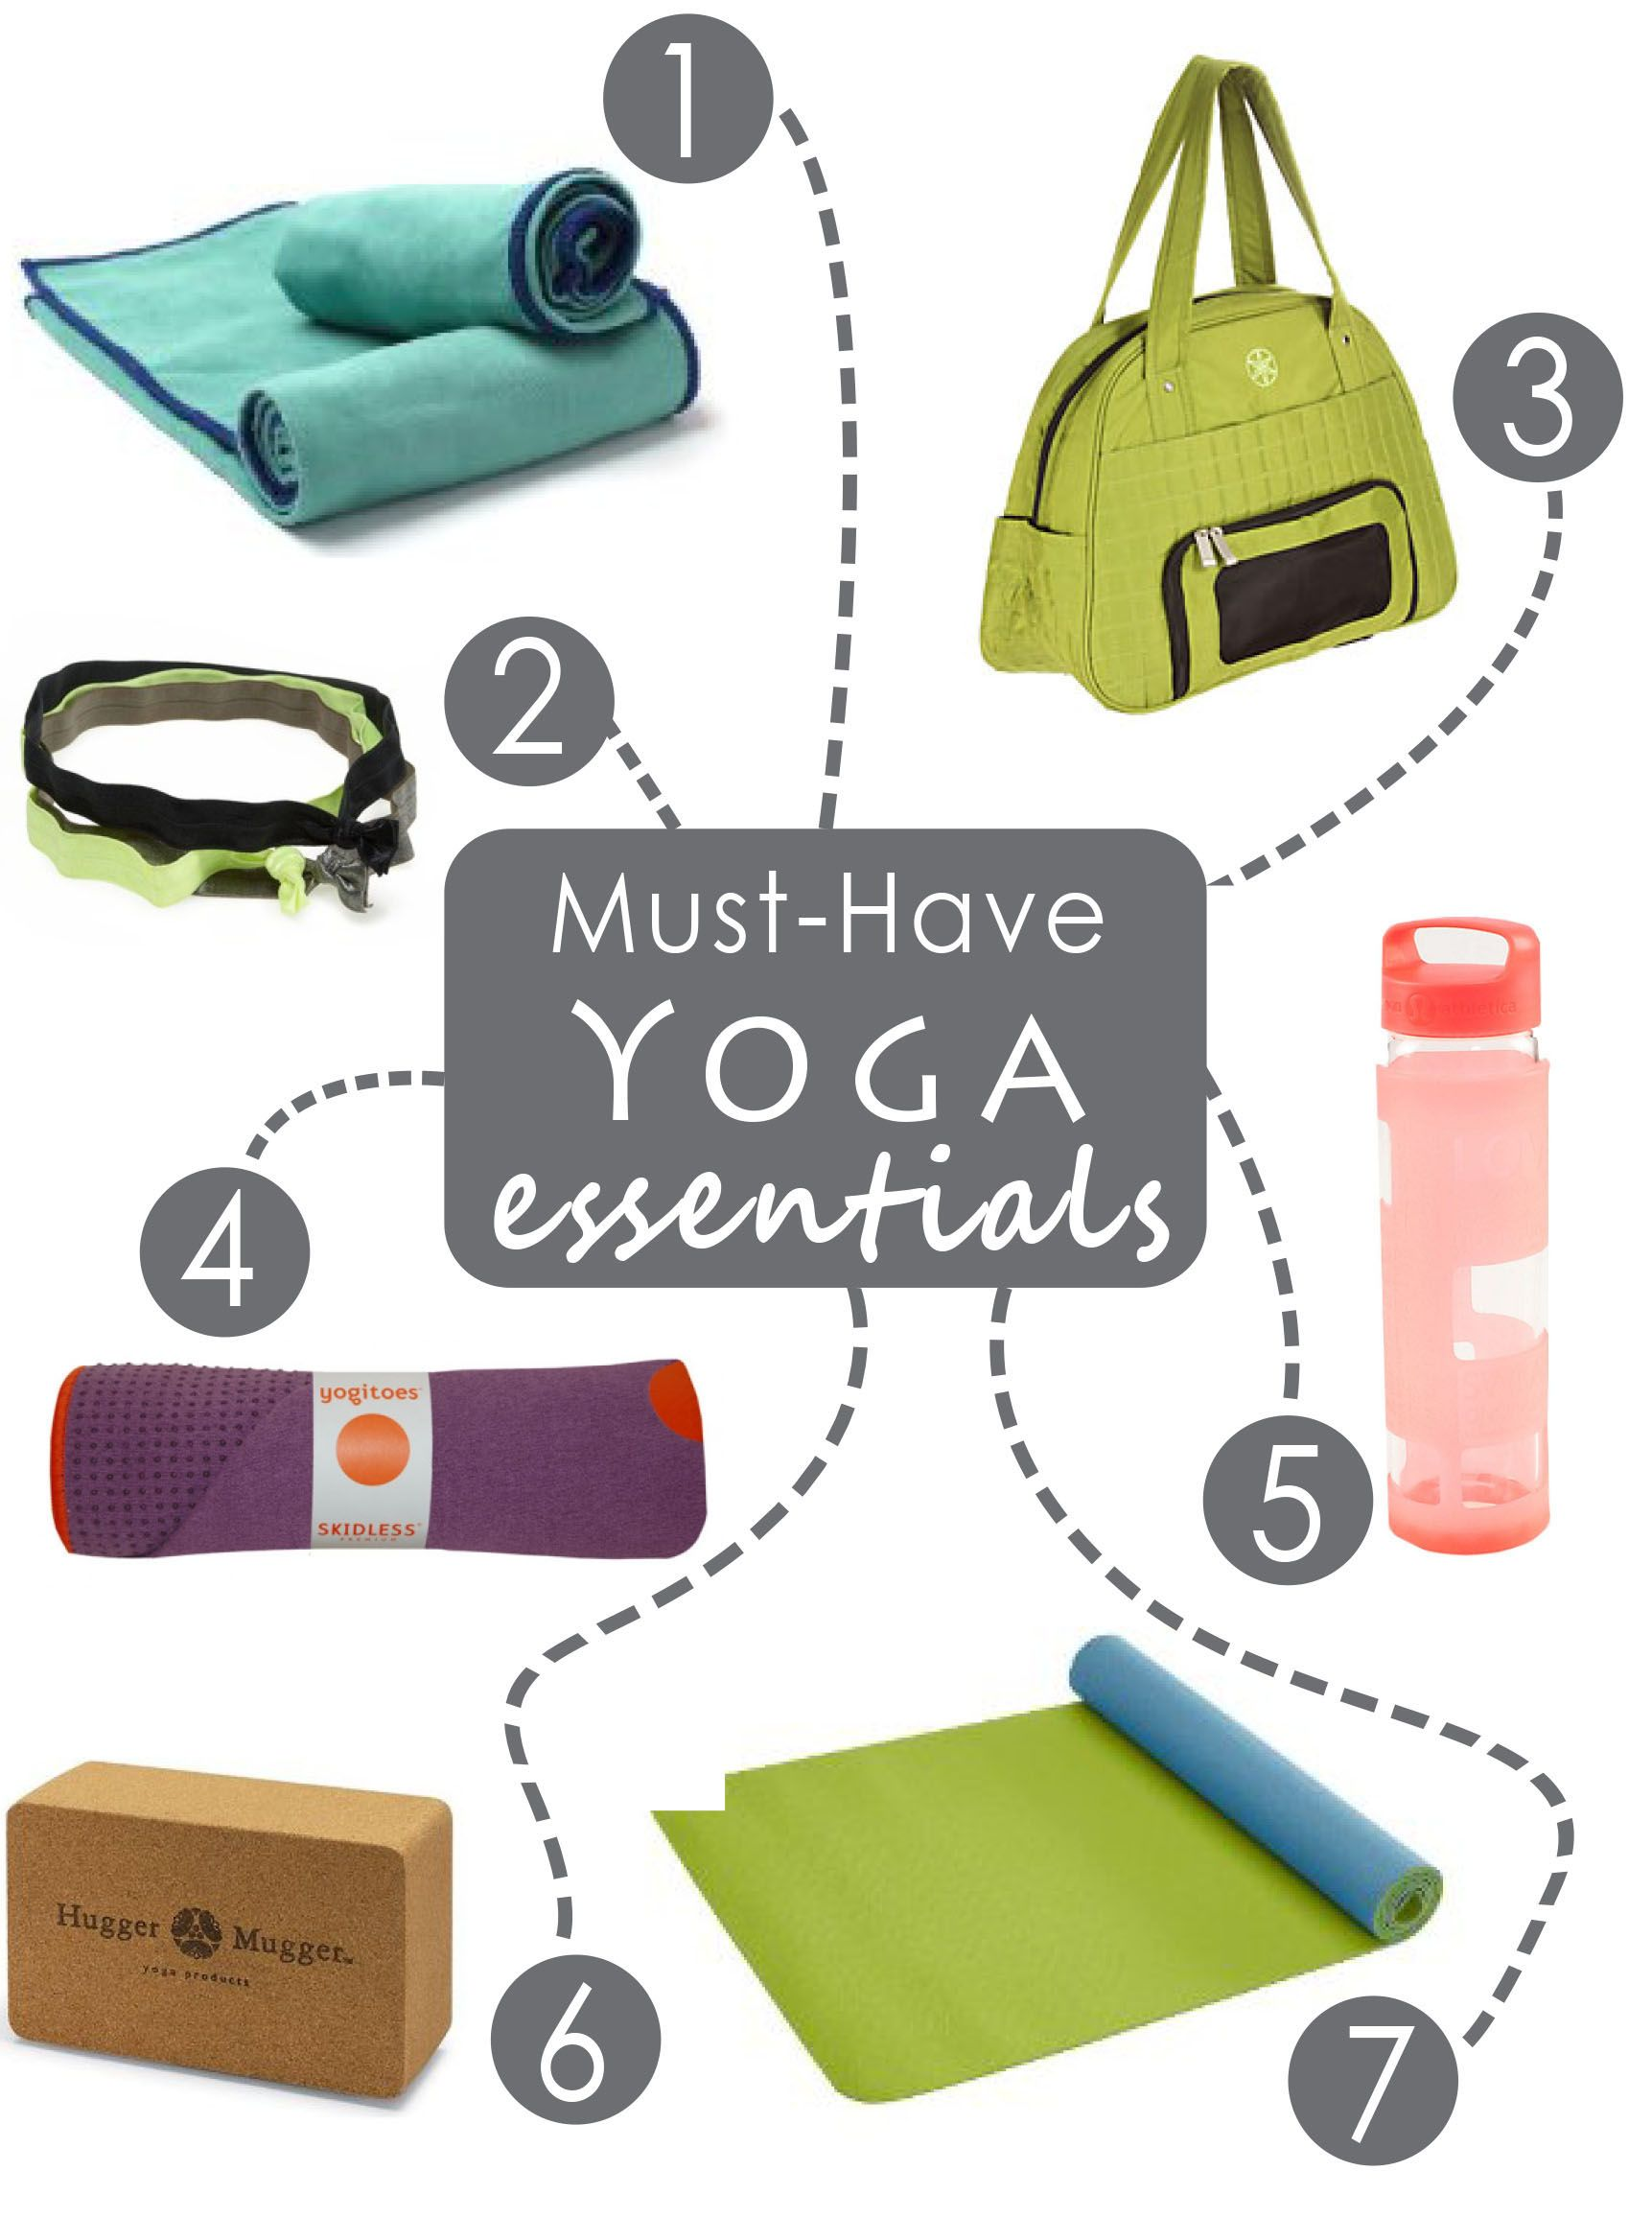 Seven Must-Have Yoga Essentials for Your First Class - Anytime Health d6281abc1bd